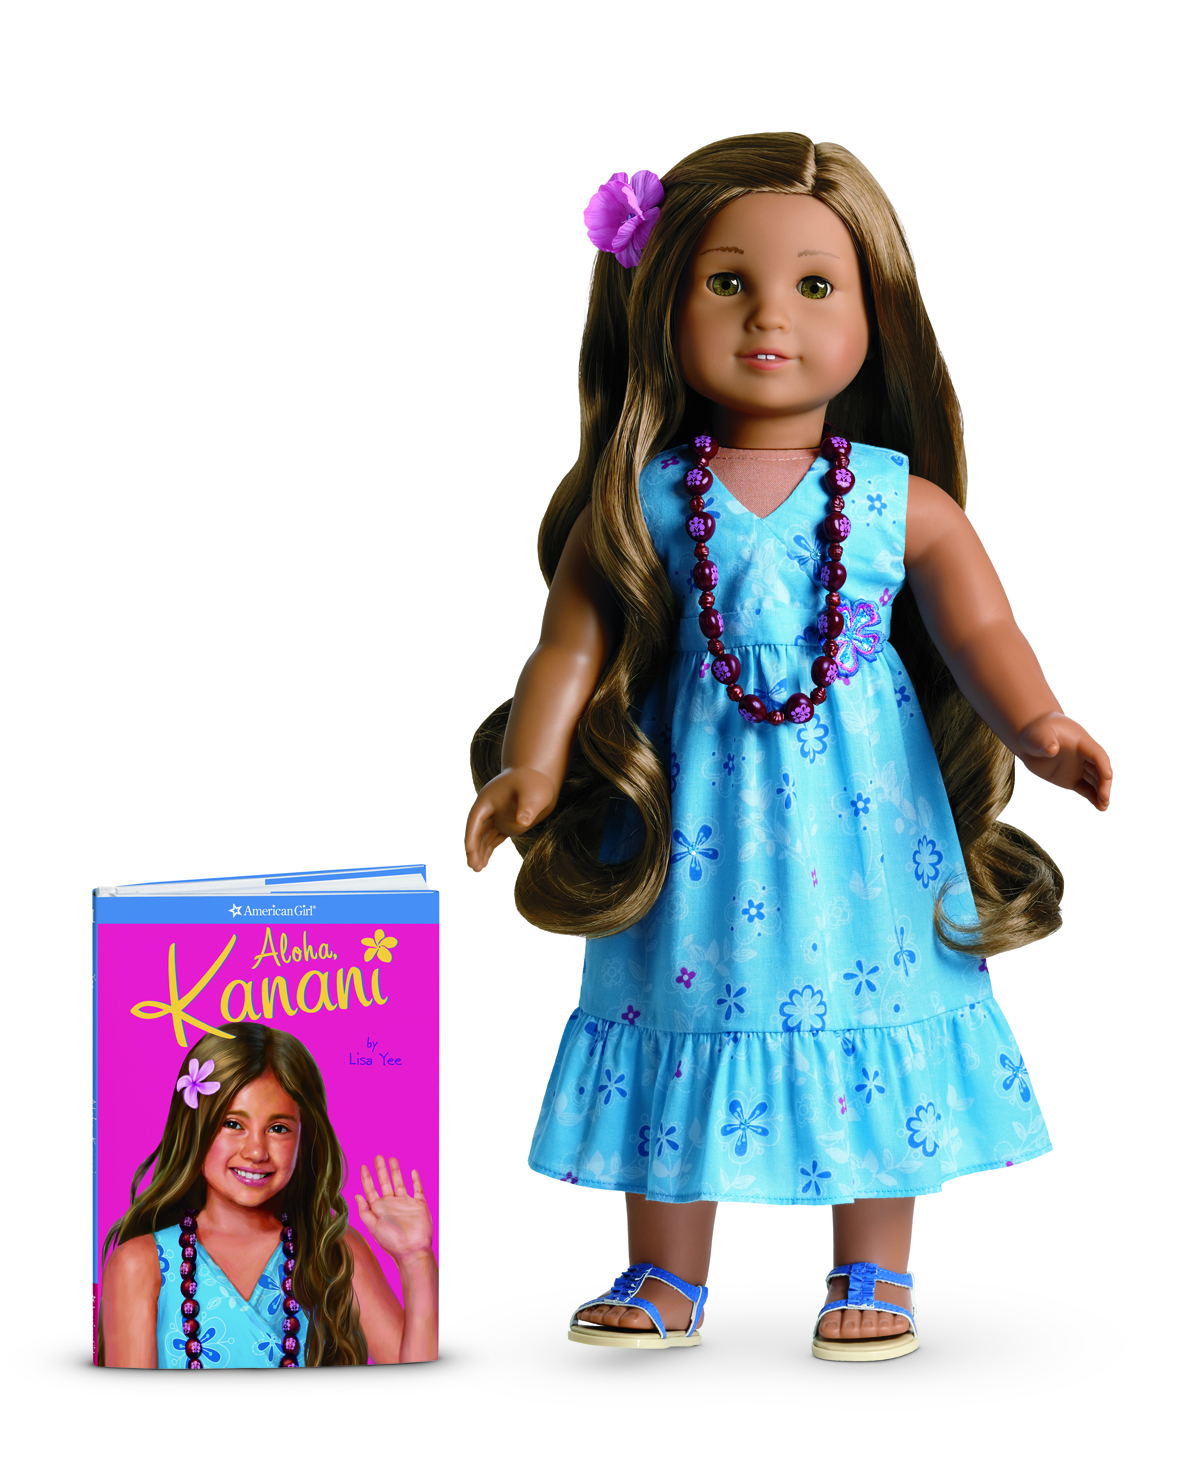 Kanani Doll and Book.jpg